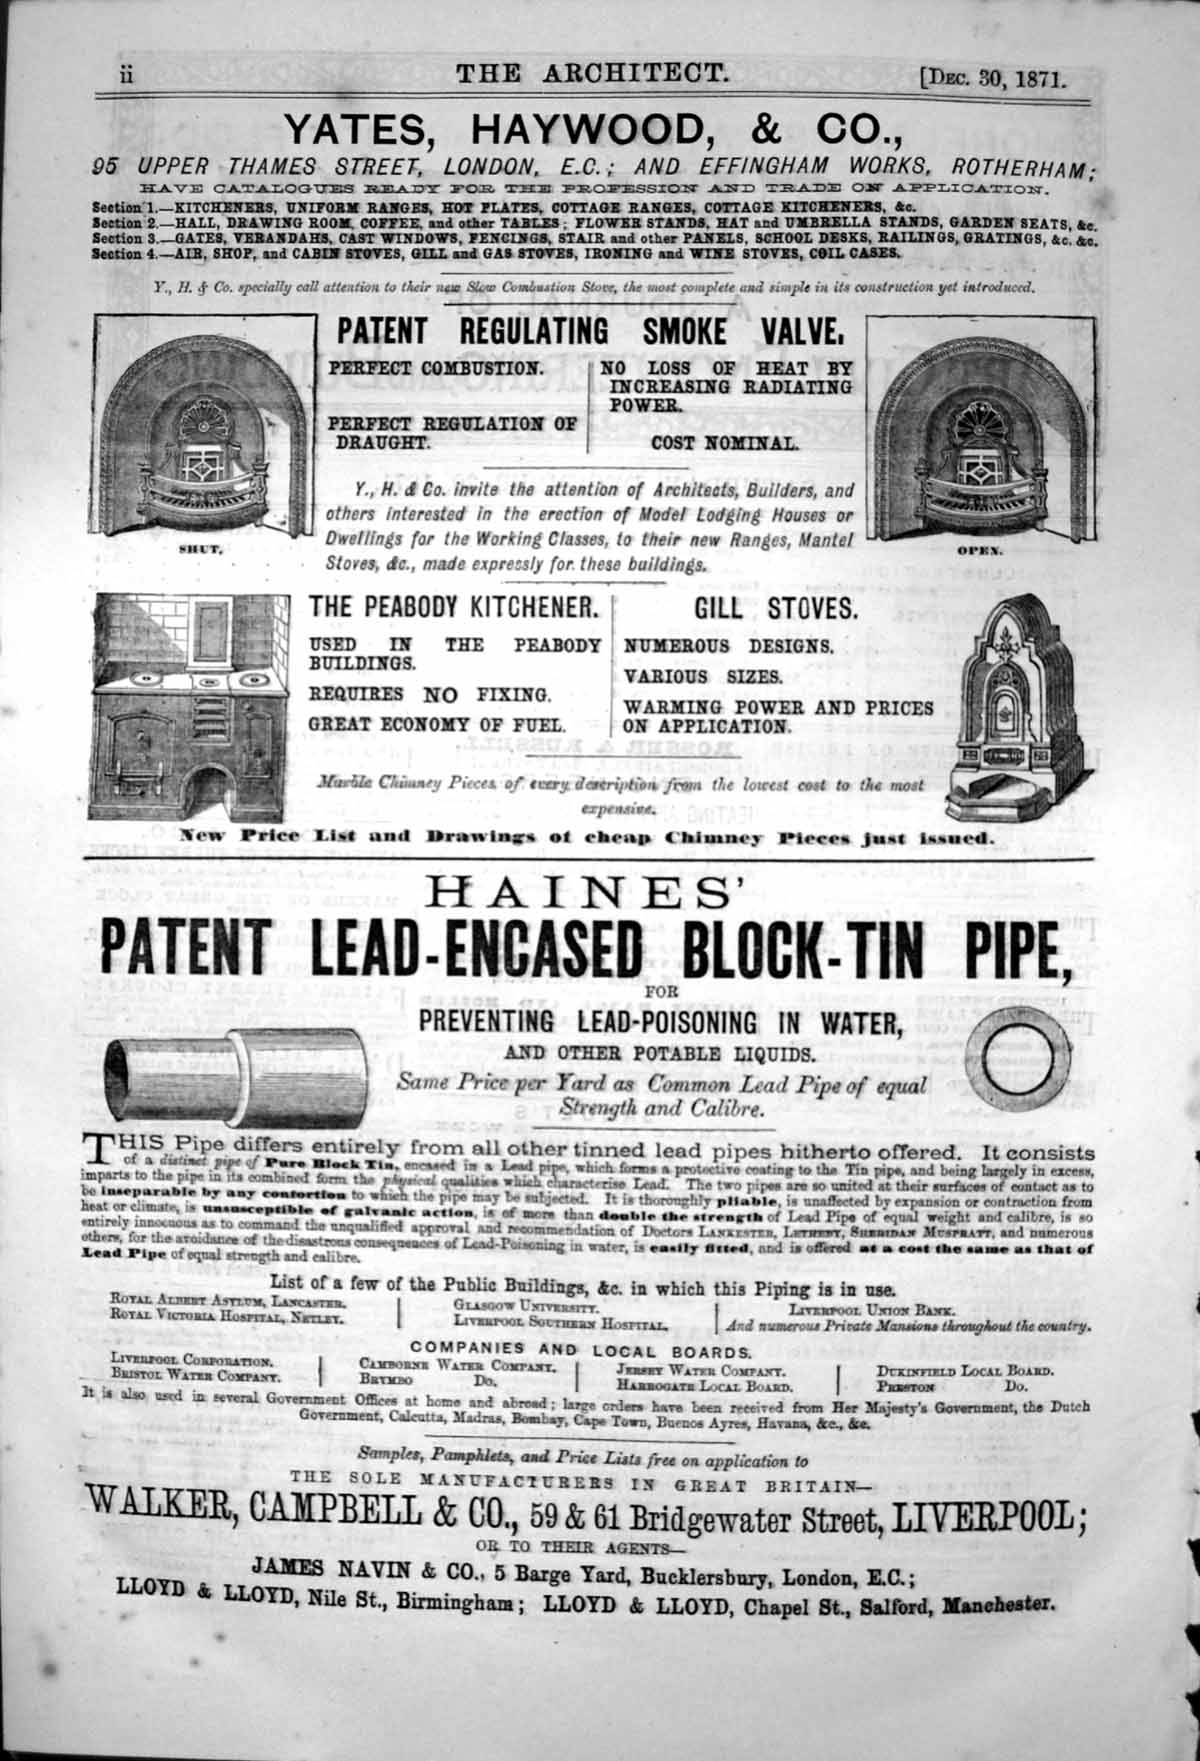 Old-Print-Haines-Lead-Cased-Block-Tin-Pipe-Yates-Haywood-amp-Co-Ranges-1871-19th